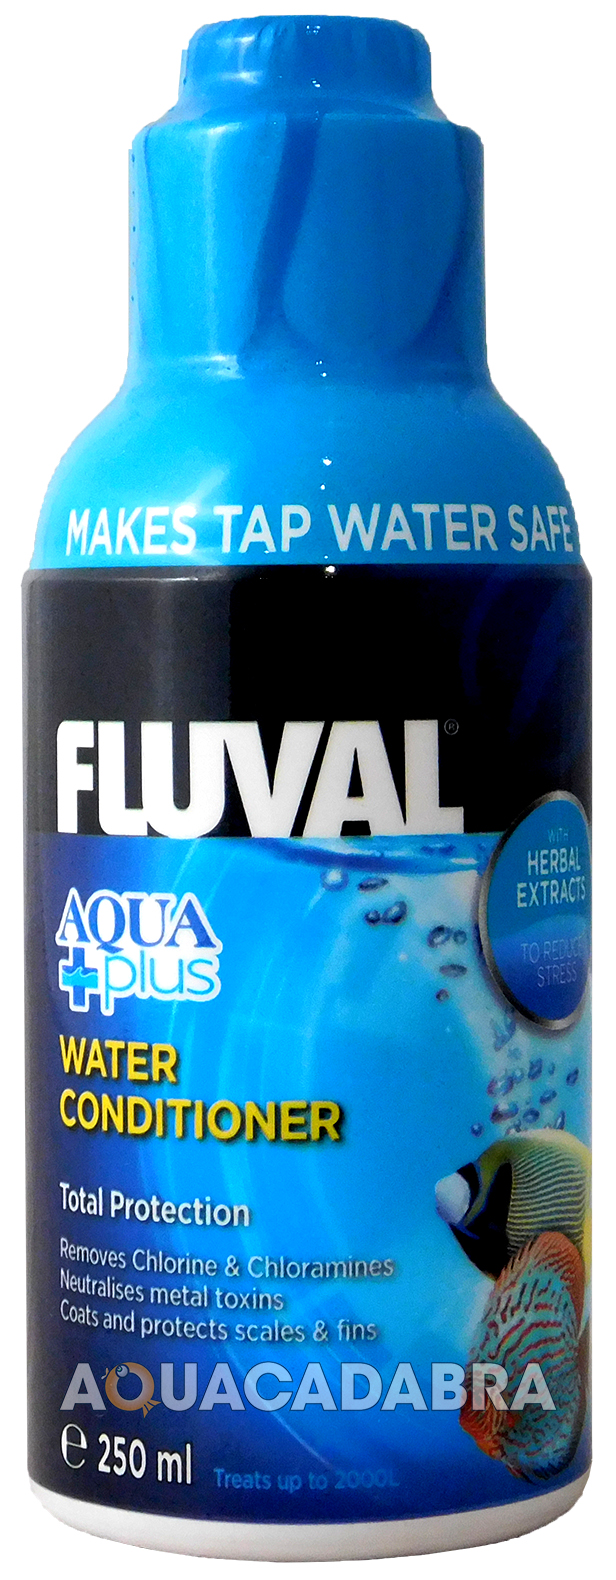 FLUVAL AQUA PLUS WATER CONDITIONER NEW FISH TANK TAP SAFE FRESHWATER NUTRAFIN | eBay